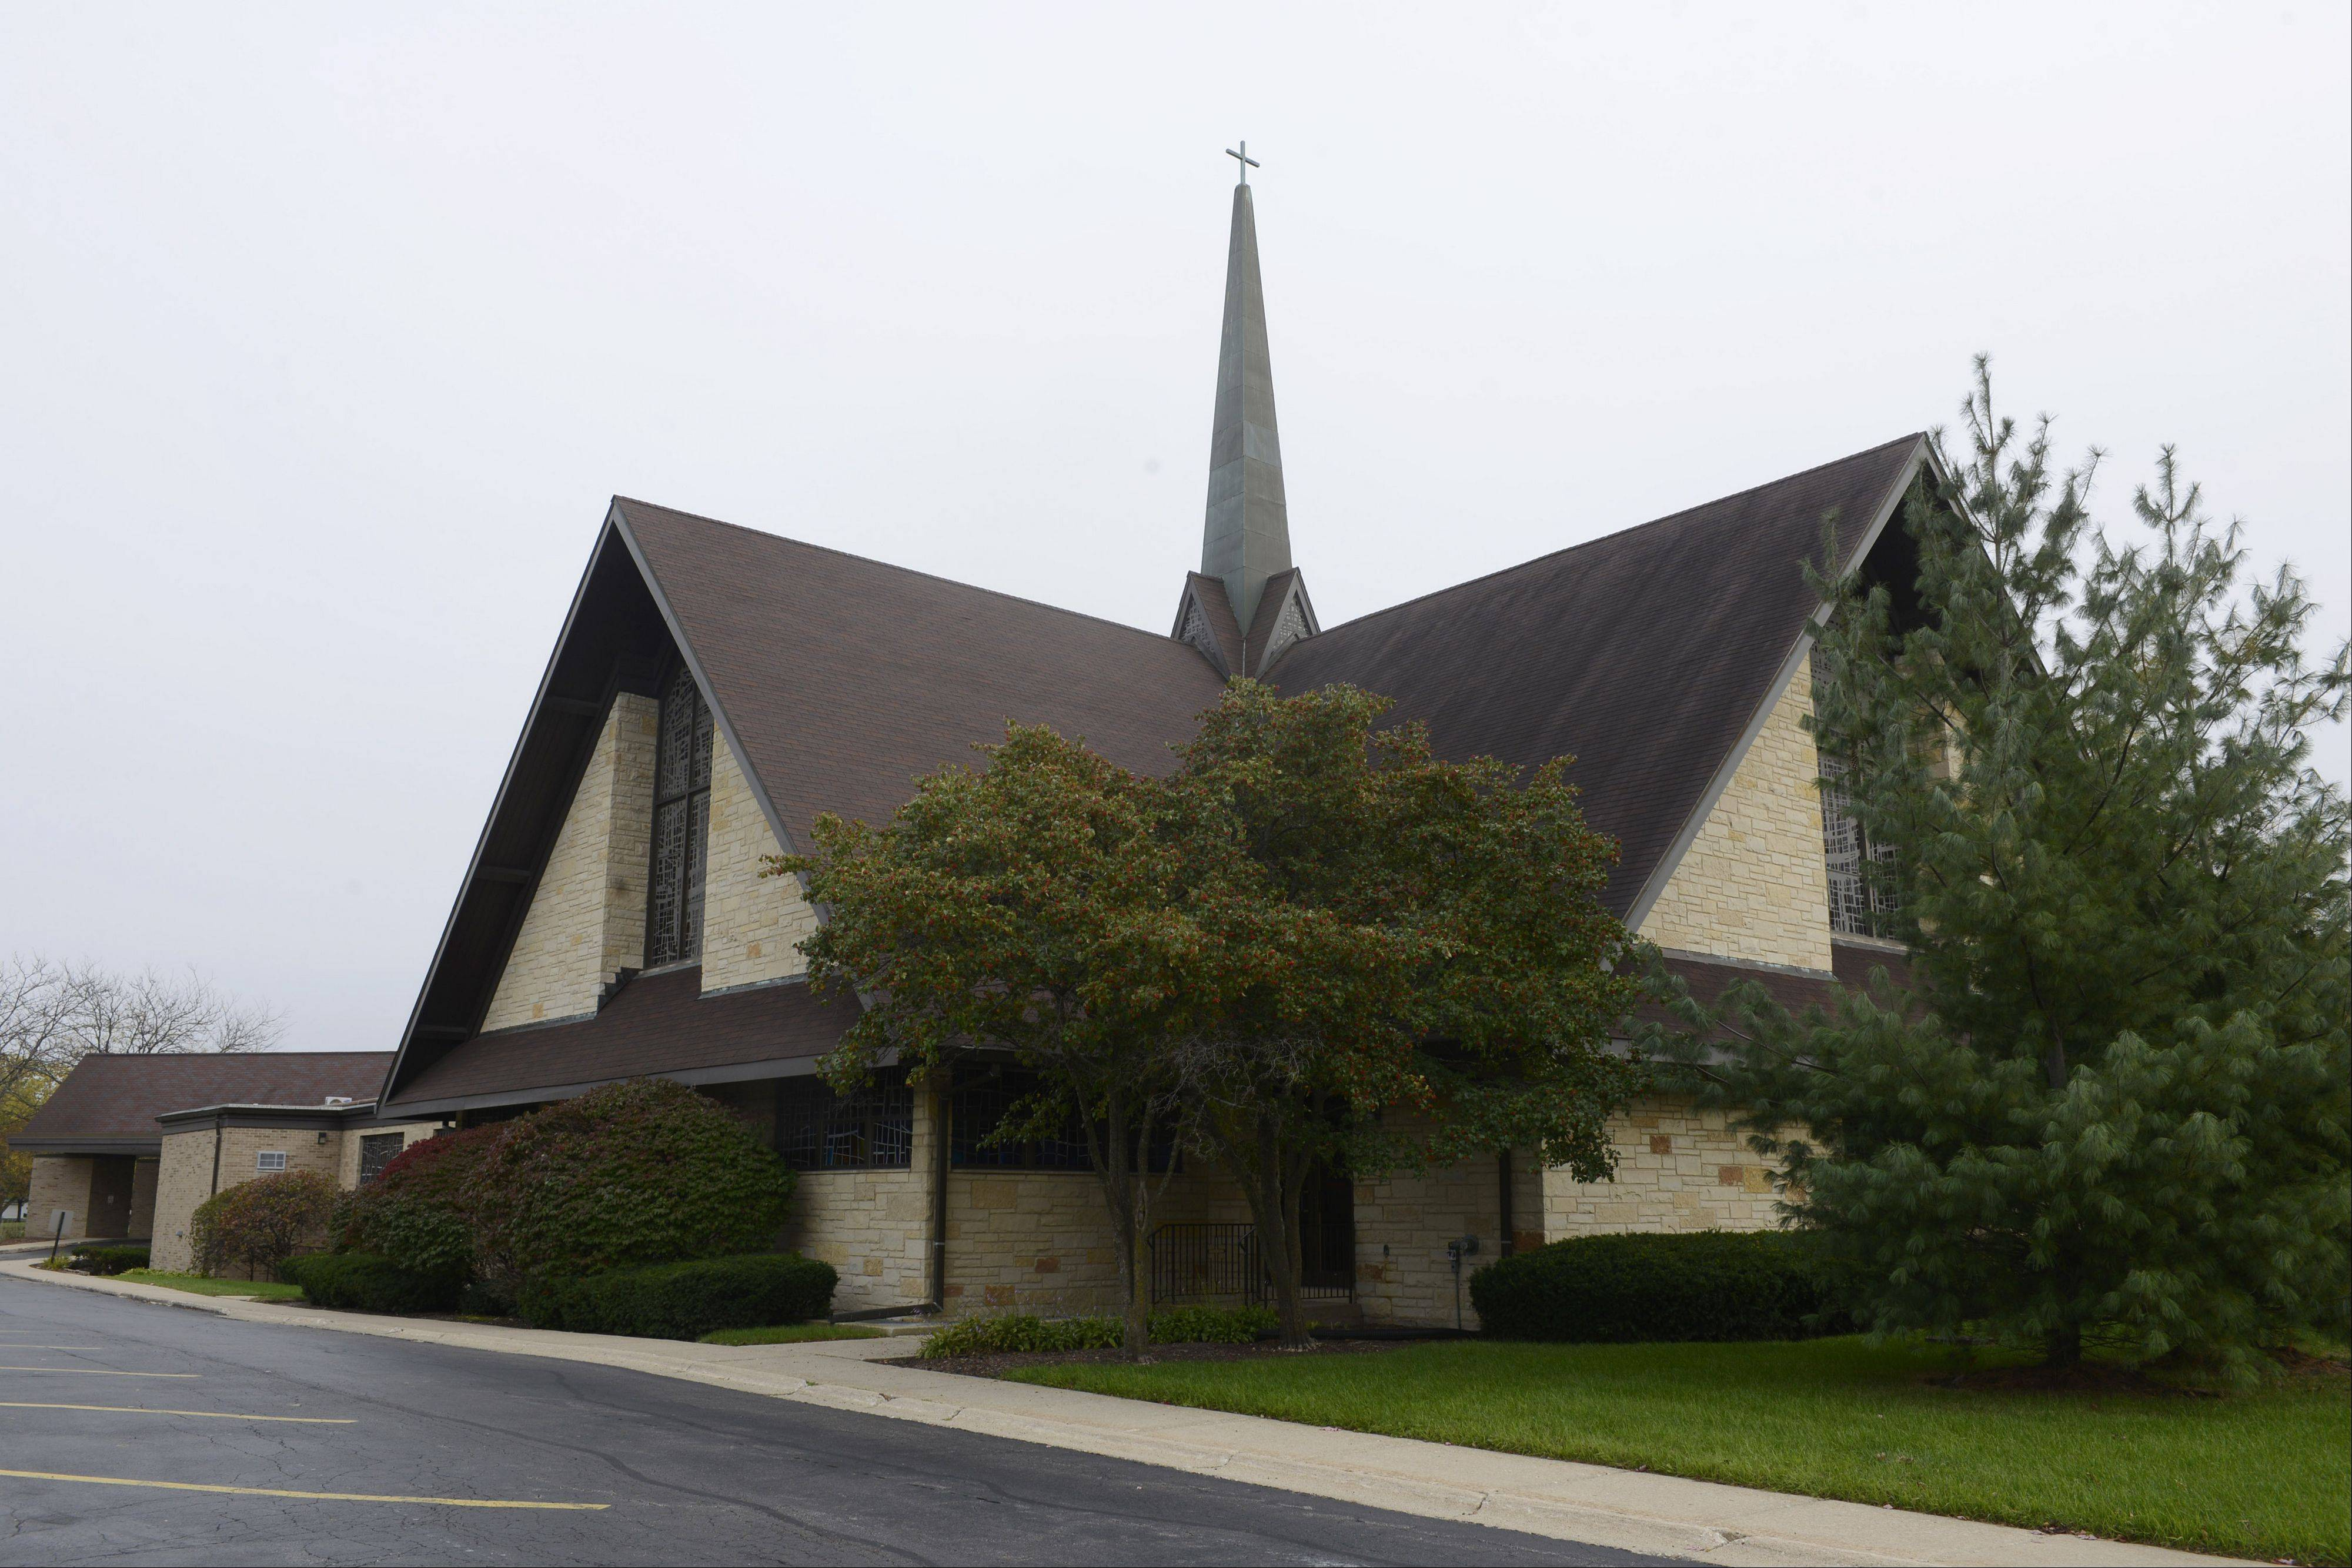 The 10-year agreement with Arlington Heights Elementary School District 25 gives Orchard Evangelical Free Church access to about 200 additional parking spots from 8 a.m. to 1 p.m. on Sundays. In turn, the school district can use the church's lot when services aren't being held.